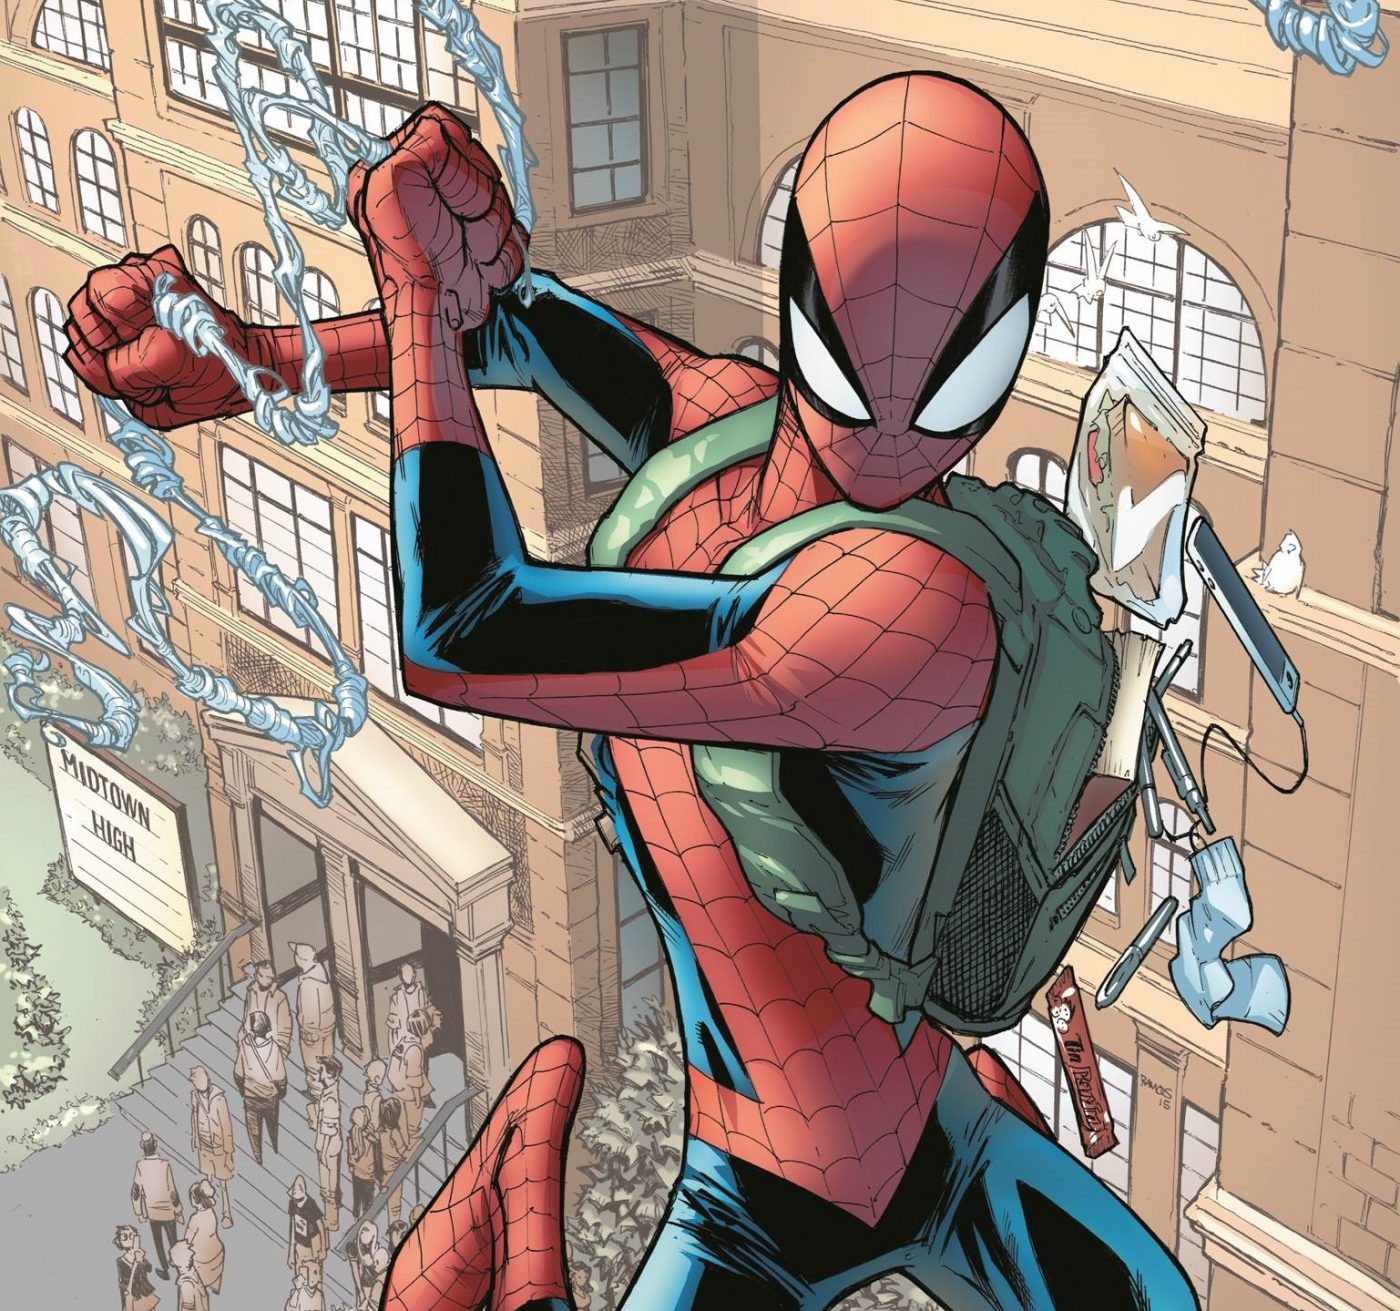 "Today, he's the world's greatest super hero. But long before he swung from rooftops as the Amazing Spider-Man, he was a super powered teenager who knew that ""with great power must also come great responsibility."" Today, Marvel is pleased to present your new look inside SPIDEY #1 – the new ongoing series from fan-favorite writer Robbie Thompson (Silk, Venom: Space Knight) and blockbuster artist Nick Bradshaw (Wolverine and the X-Men, Guardians of the Galaxy)! Class is in session as these two explosive creators take Peter back to school for a classic and iconic take on the Spider-Man mythology. Familiar faces and characters populate Peter Parker's world as he balances his double life as high school student and the high-flying, web-swinging new hero Spider-Man!"